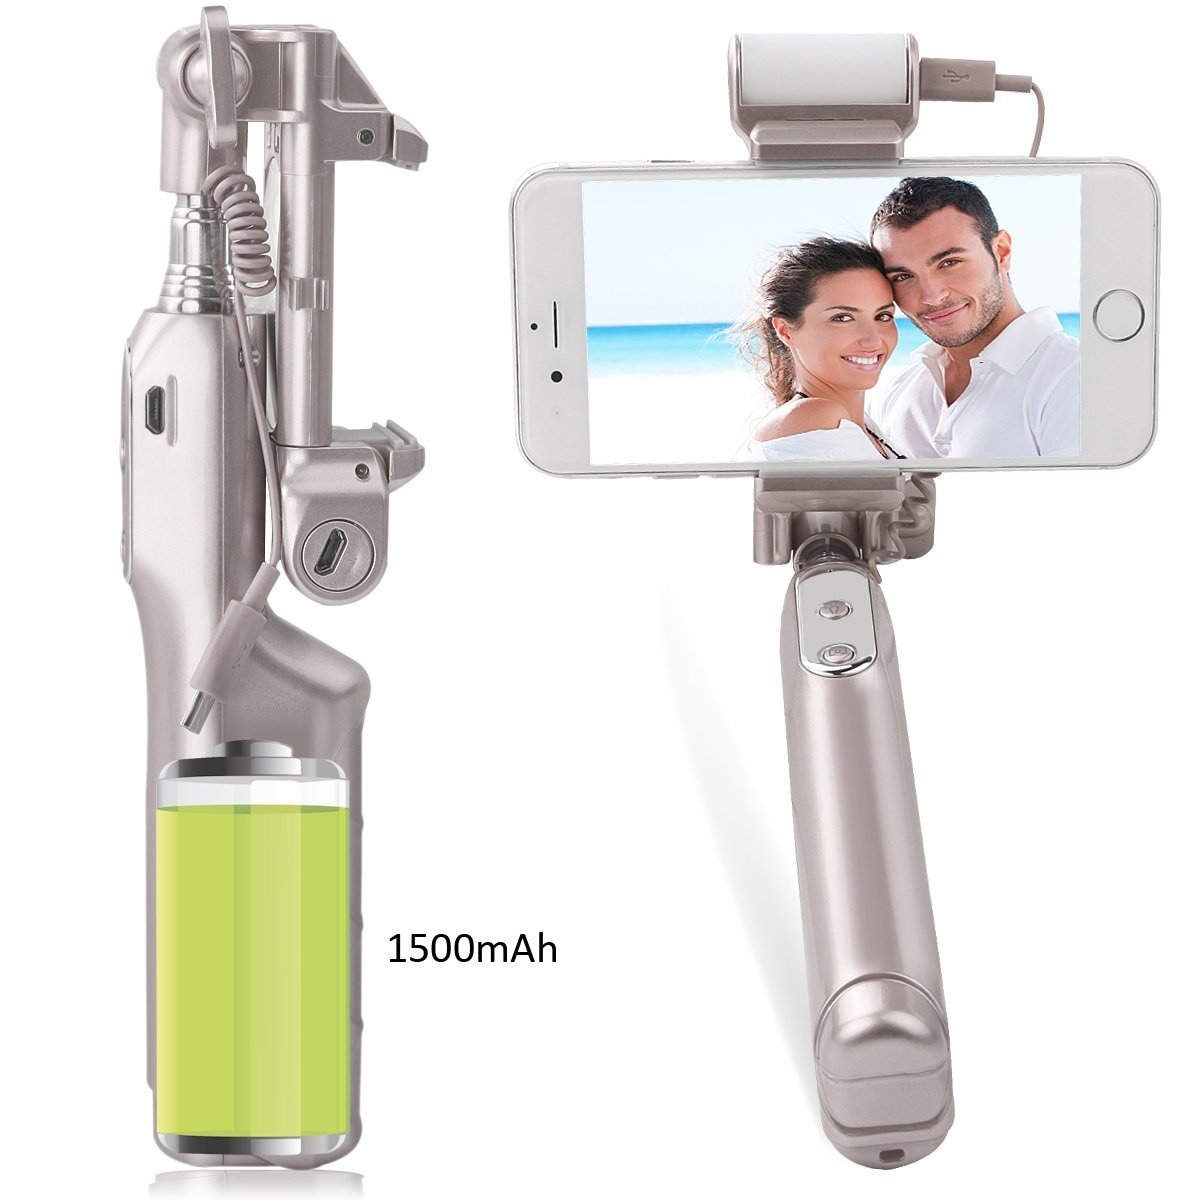 Mocreo Selfie Stick Bluetooth With 360 360diagram Degree Feedback Led Fill Light And Mirror For Iphones Samsung Galaxy S7 Edge S4 Android System